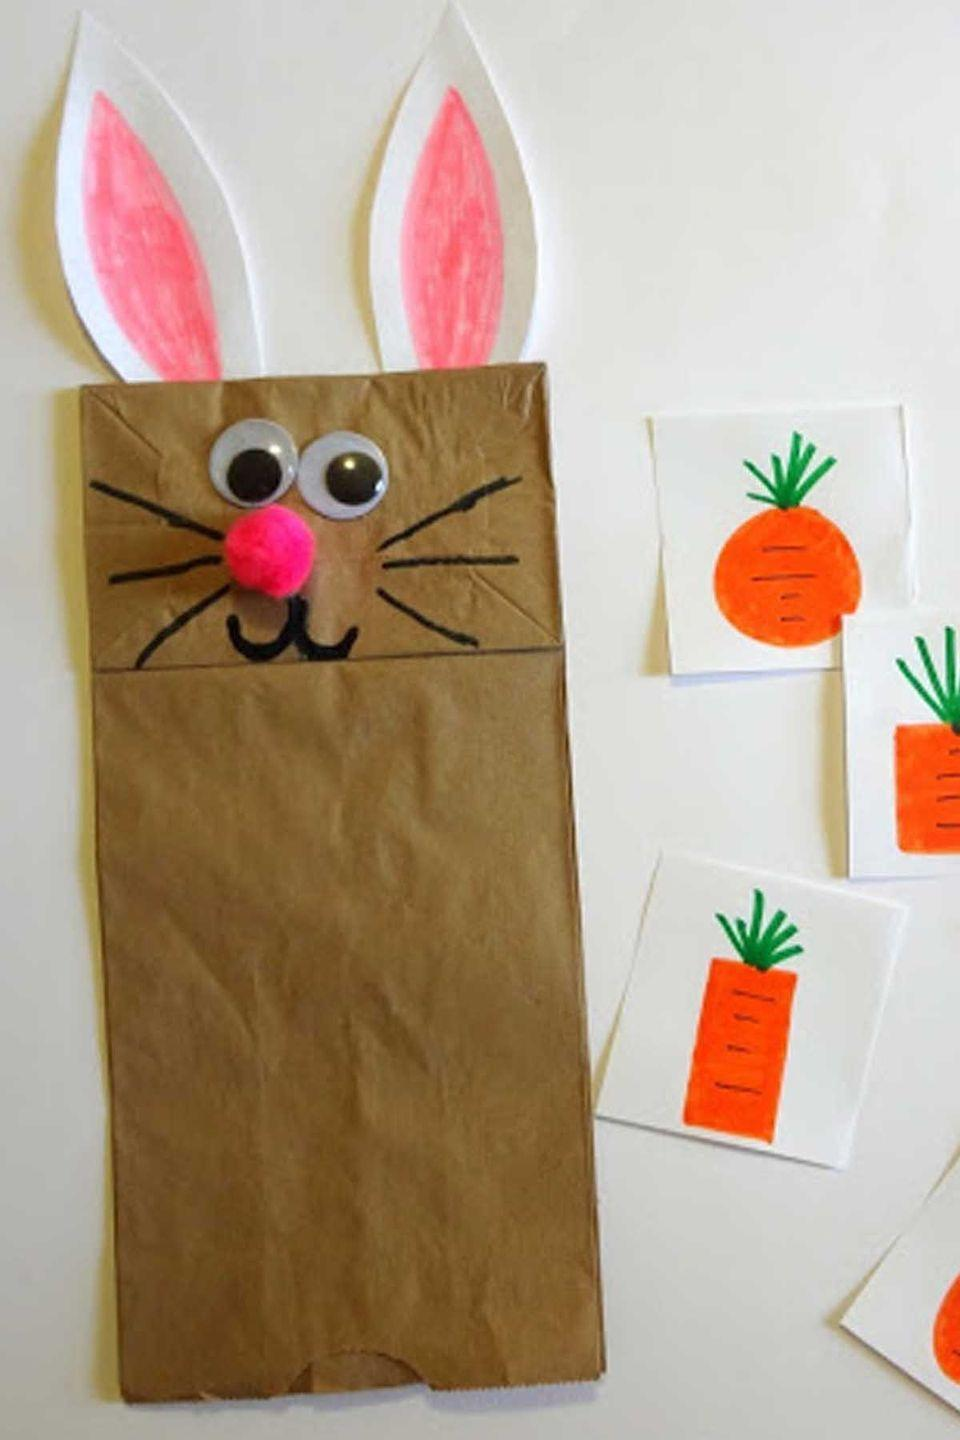 """<p>This adorable game is not only fun, but educational. The idea is to draw different carrot shapes on white pieces of paper and ask your child to choose the rectangular carrot, the round carrot, the square carrot and so on. If they get it right, the paper bag bunny will devour it right up!</p><p><em>Get the tutorial at <a href=""""http://www.littlefamilyfun.com/2013/03/feed-bunny-game.html"""" rel=""""nofollow noopener"""" target=""""_blank"""" data-ylk=""""slk:Little Family Fun"""" class=""""link rapid-noclick-resp"""">Little Family Fun</a>.</em></p>"""